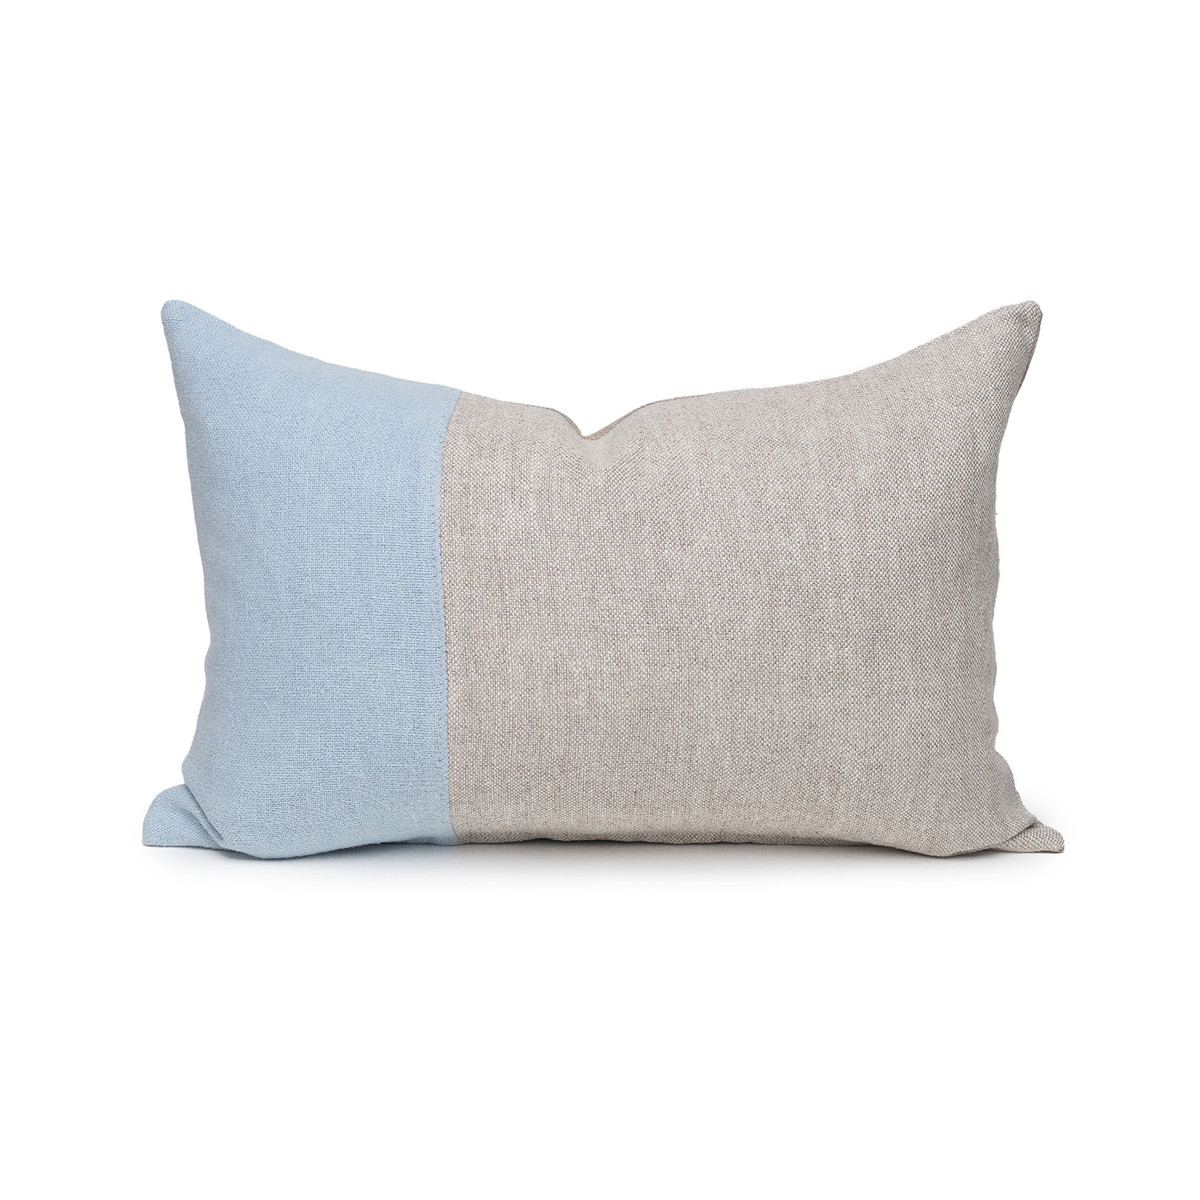 Dime French Blue and Natural Linen Lumbar Pillow - 14 x 20  - Front View